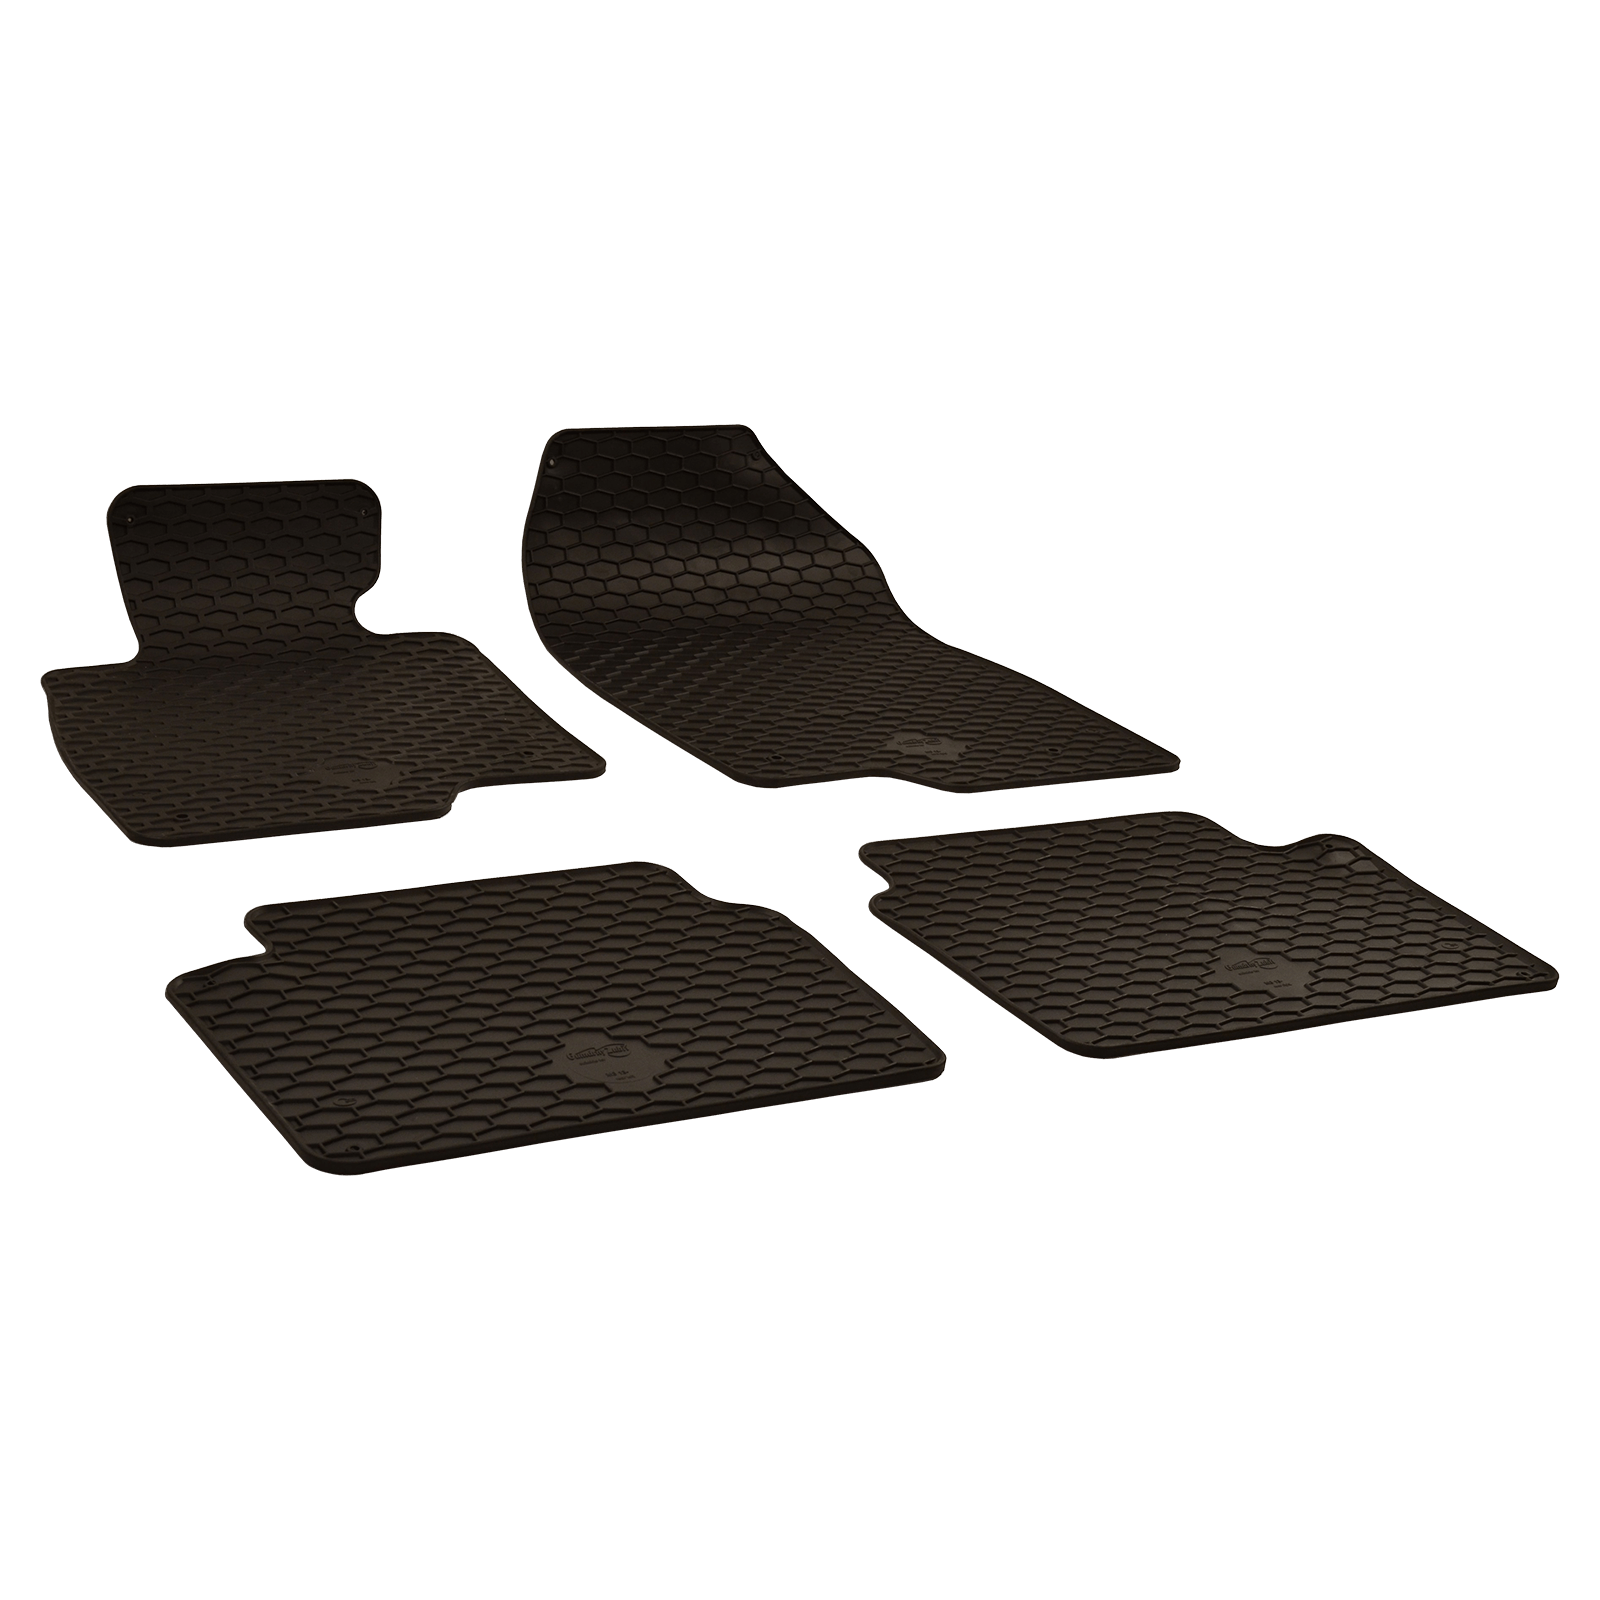 tapis de sol en caoutchouc noir pour mazda 3 a trois volumes bj. Black Bedroom Furniture Sets. Home Design Ideas